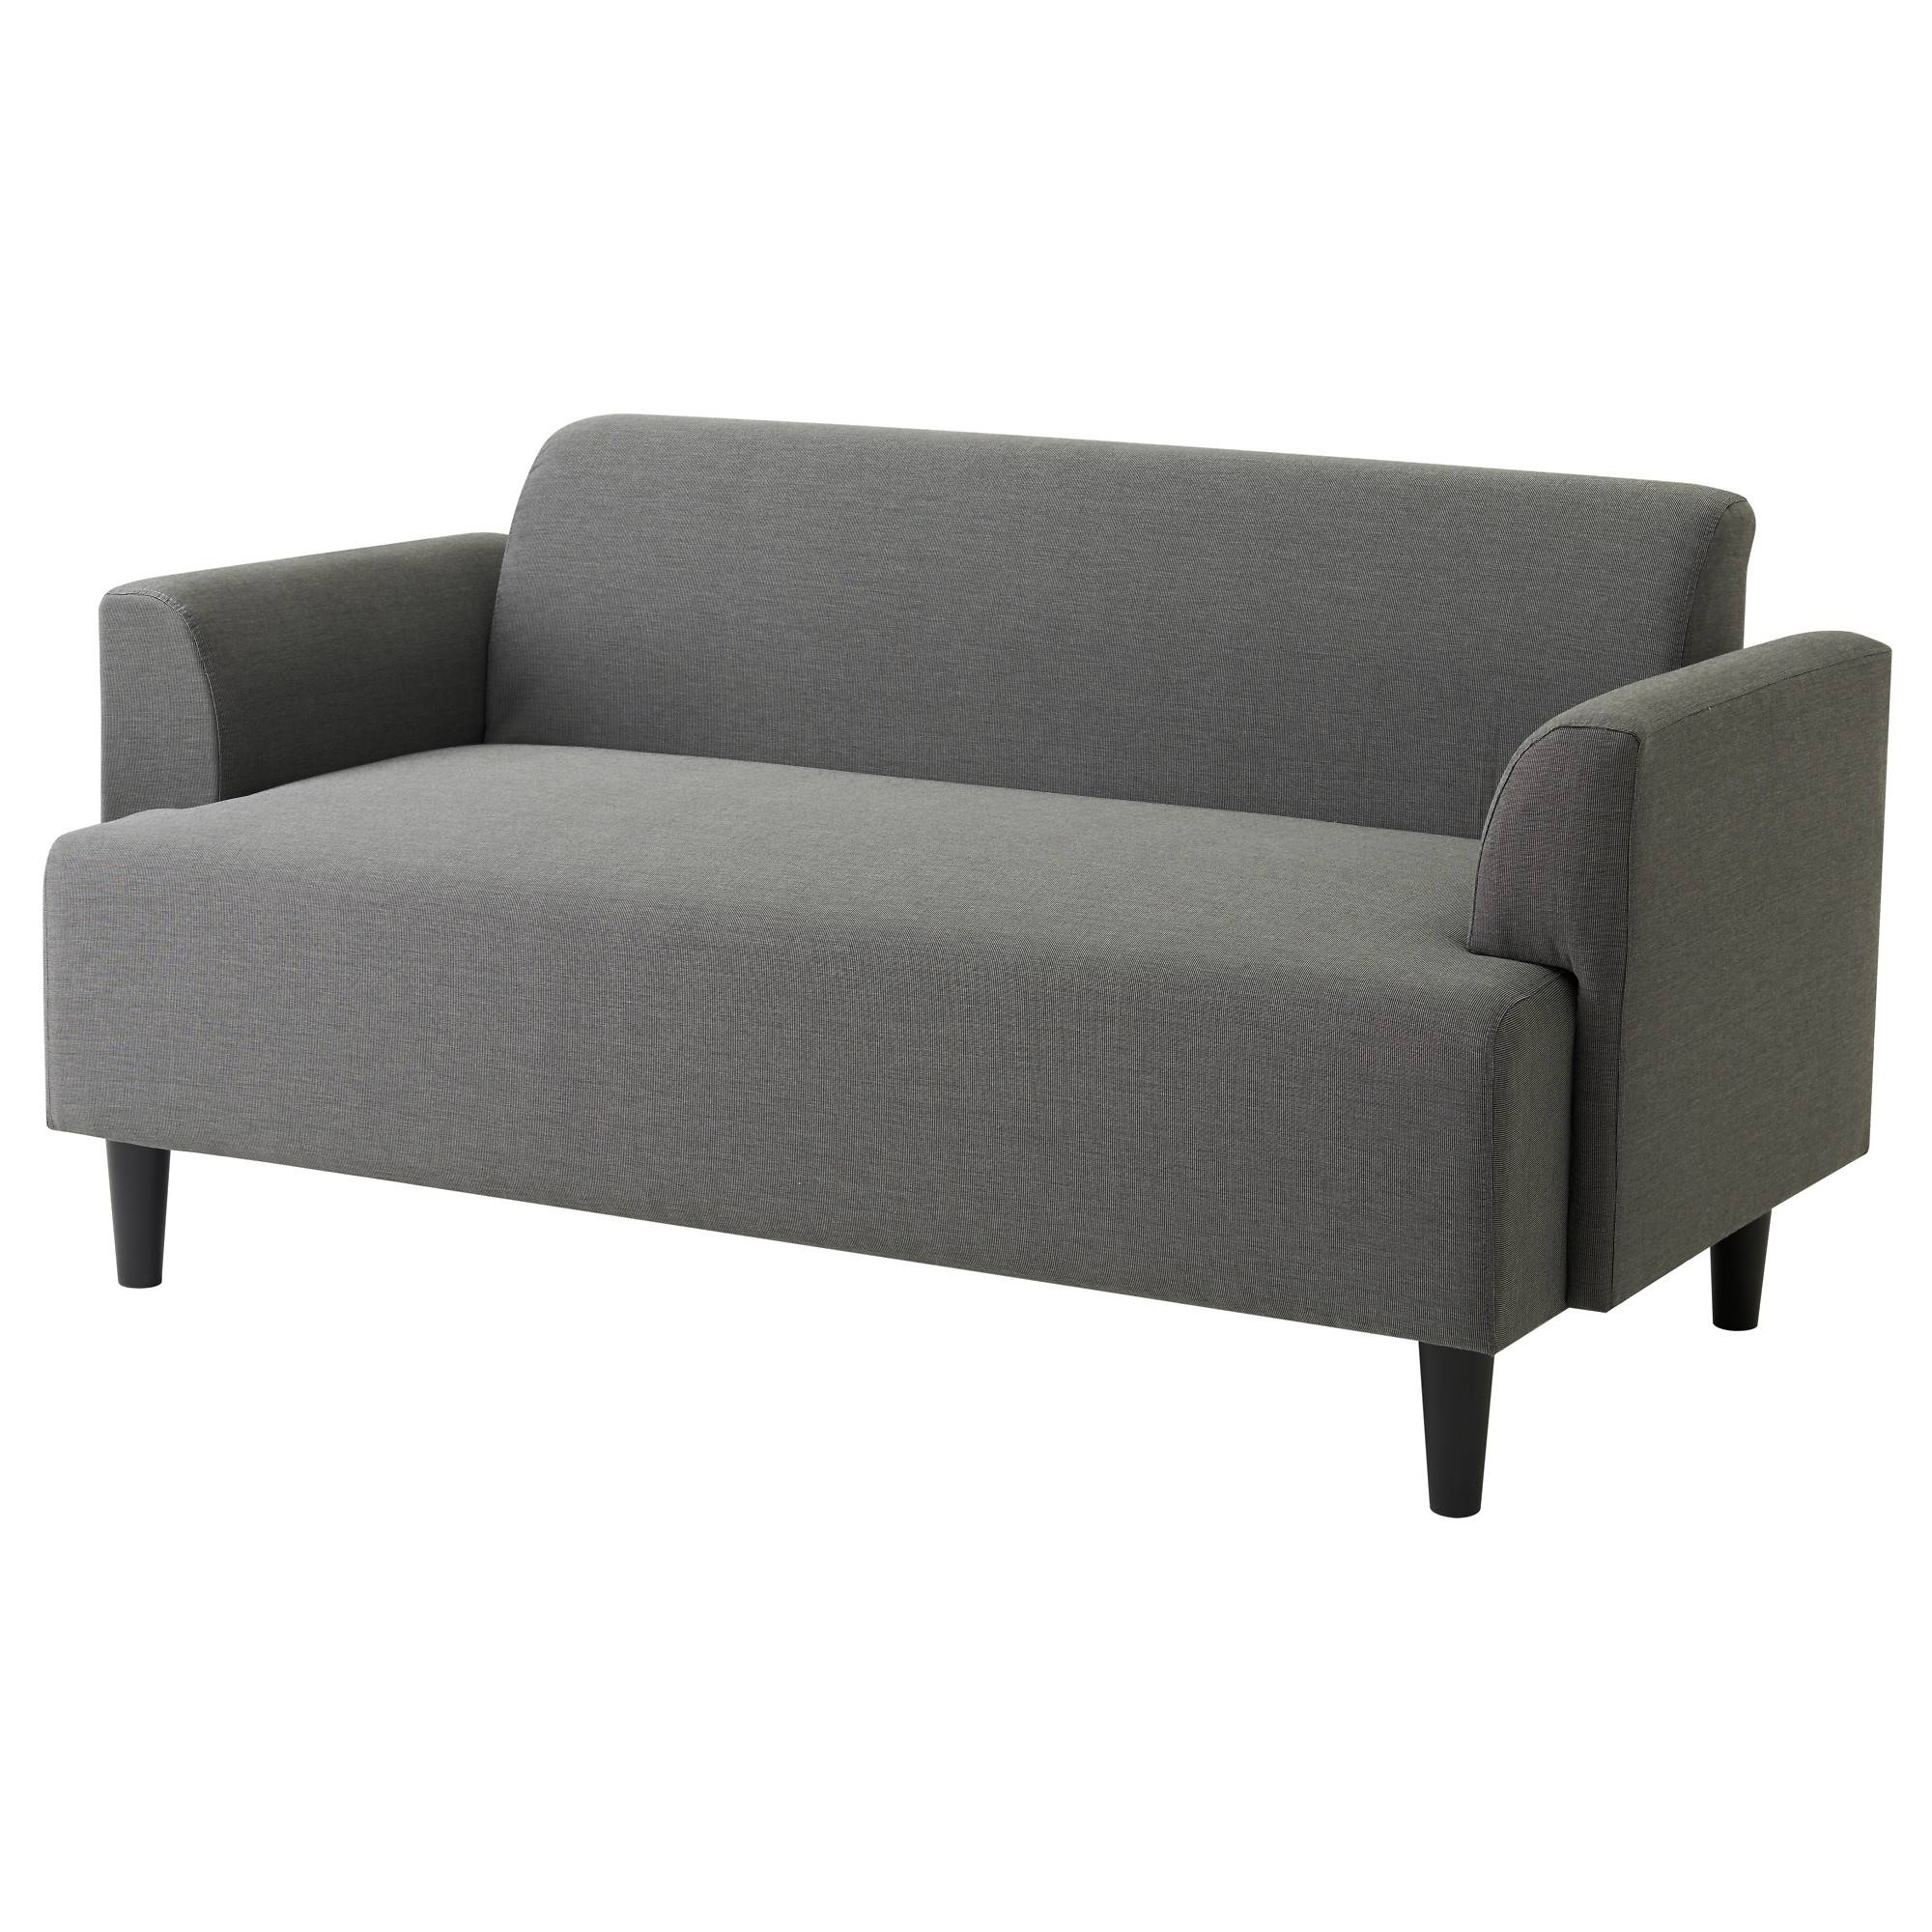 Hemlingby Two-Seat Sofa - Ikea in Ikea Two Seater Sofas (Image 6 of 30)